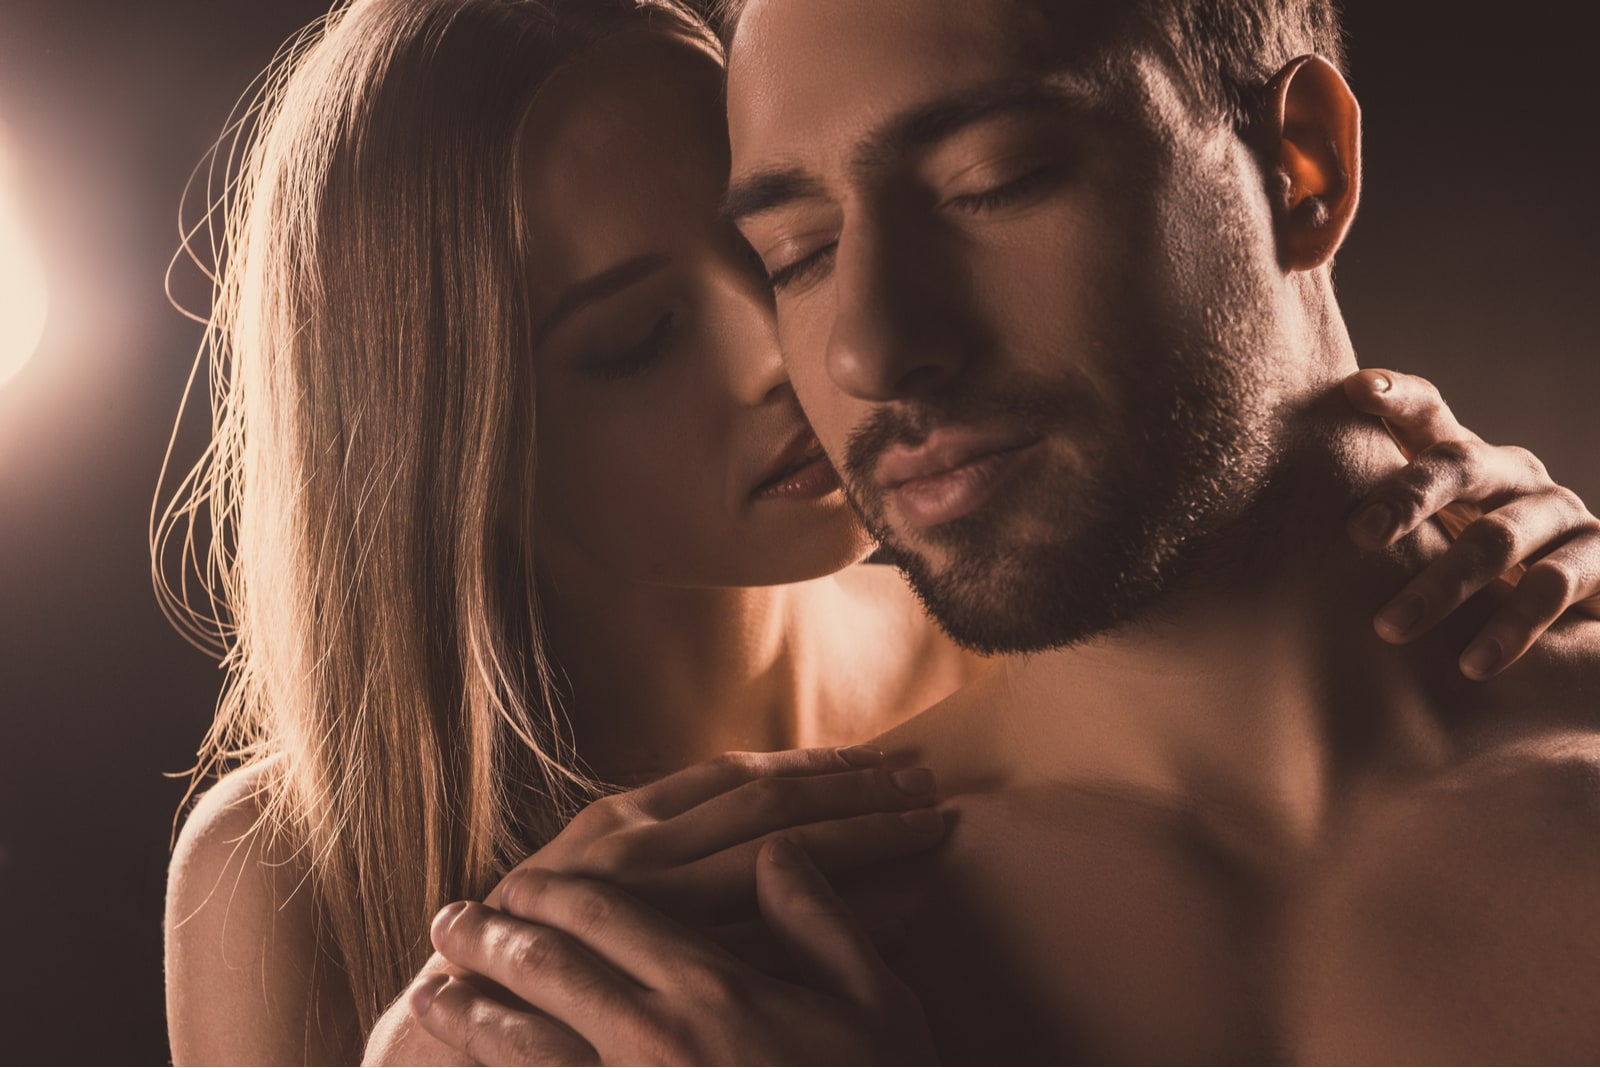 7 Things You Definitely Need To Know Before You Start Having Sex